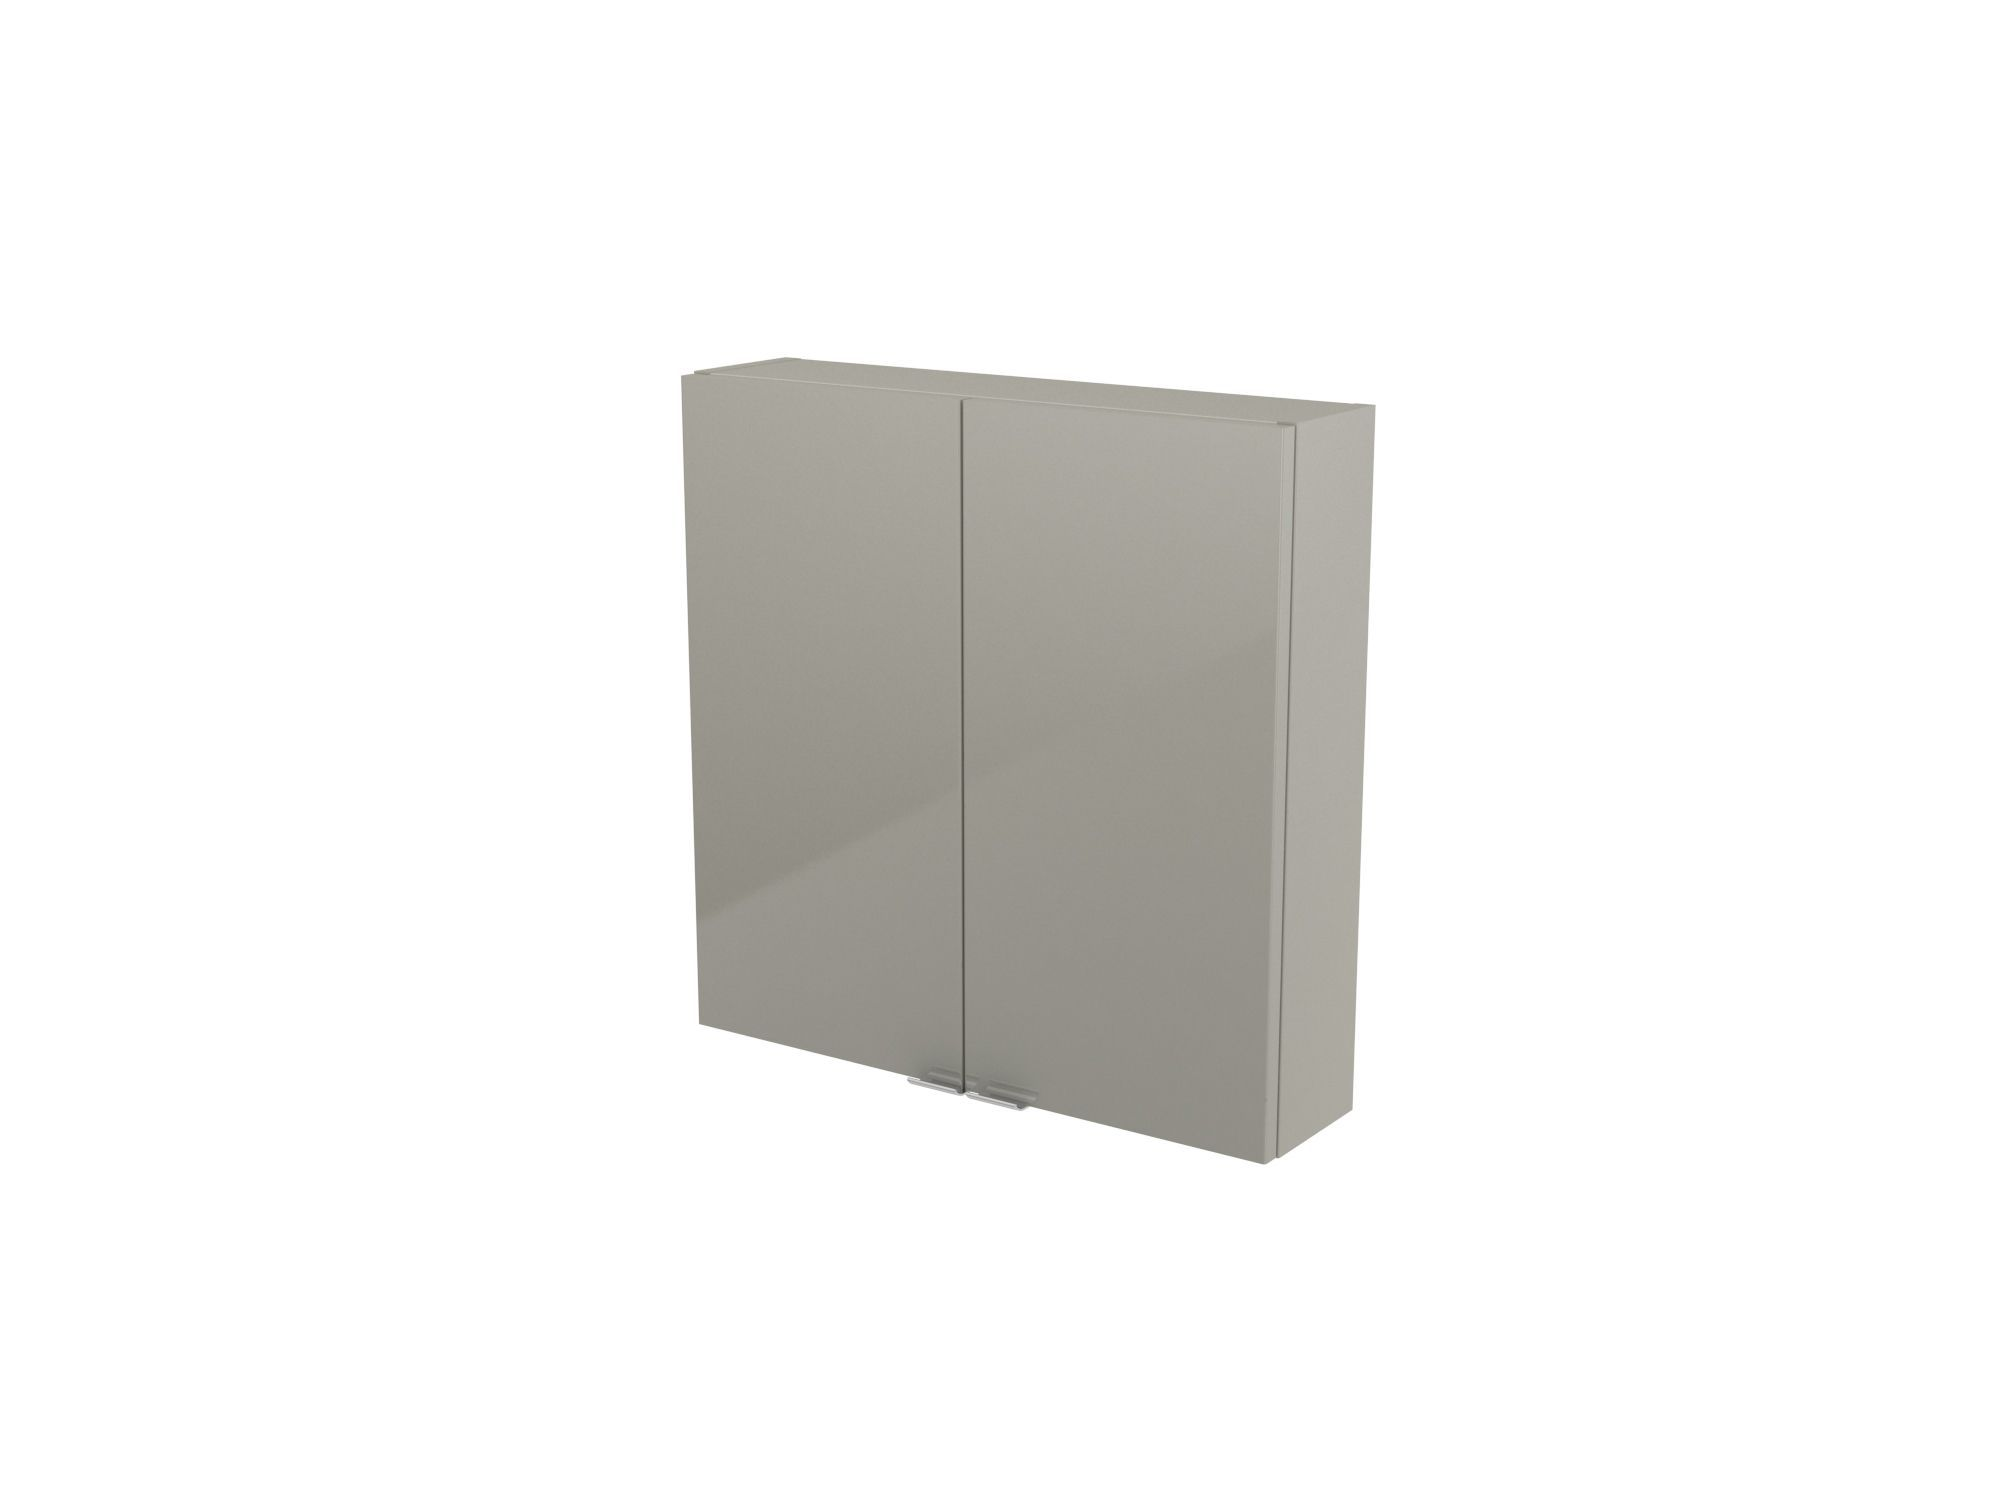 Cooke & Lewis Imandra Gloss Taupe Short Wall Cabinet, (w)600mm